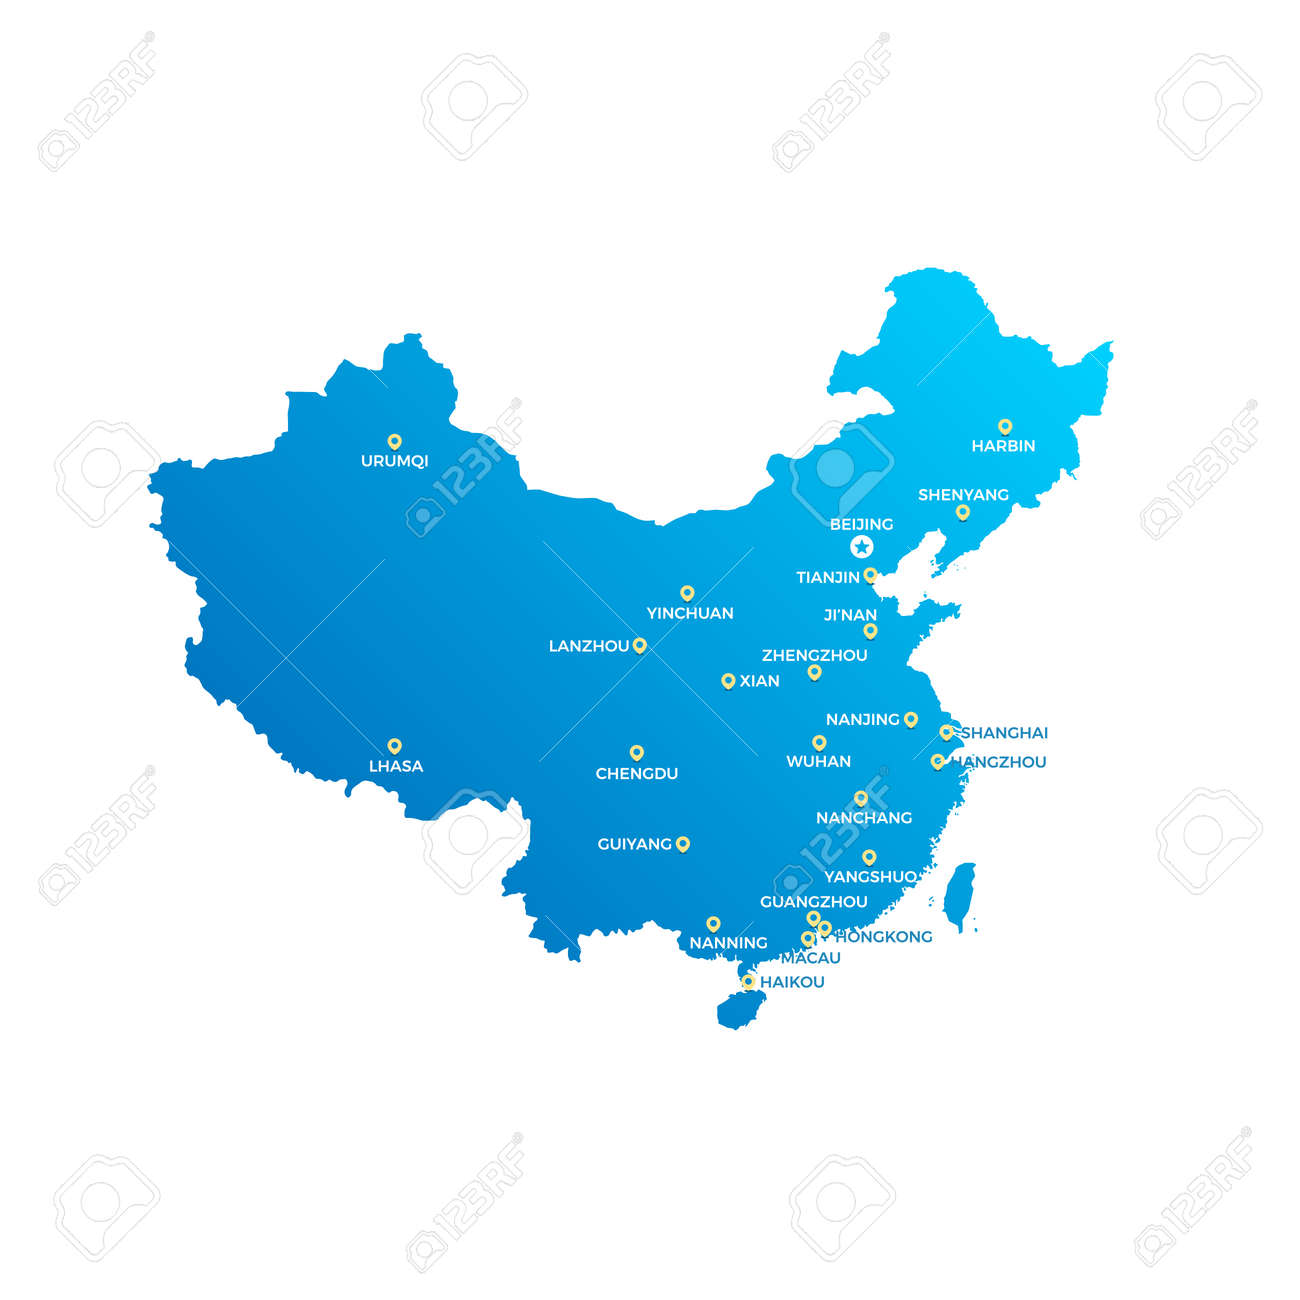 China Cities Map on map of china, map china guangxi region, map in us, map se usa, map japan, map china climate, map venezuela flag, map china deserts, map from europe, map western europe, map hong kong, map china travel, valencia-venezuela cities, map china airports, map china tourism, map china provinces, map of asia, map in europe, map north africa and middle east, map in india,